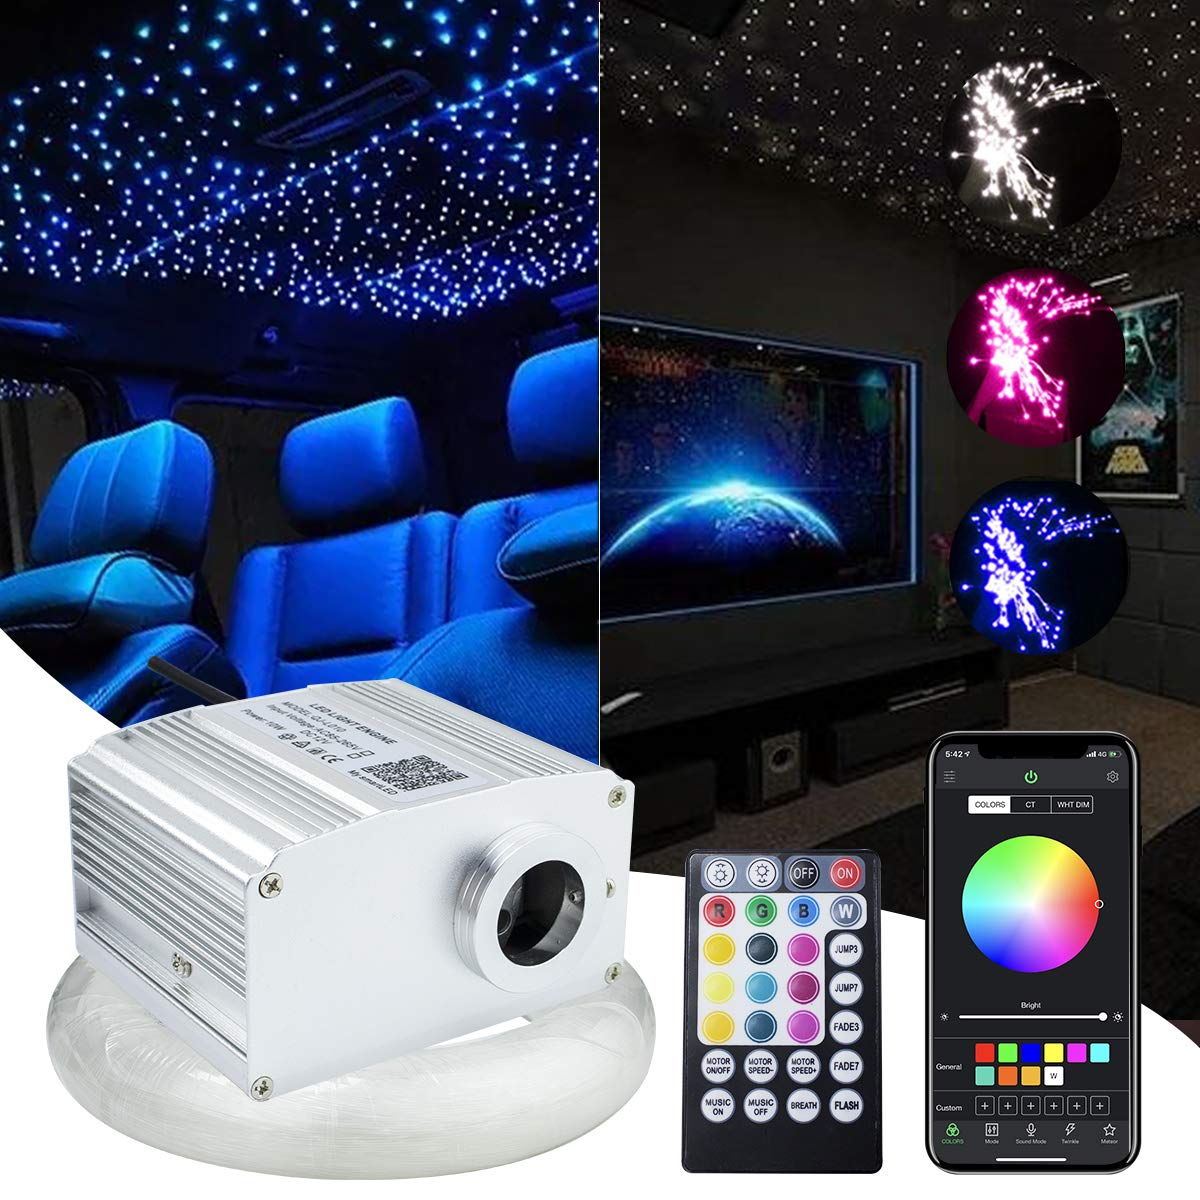 Kingmaled 10W Car Home RGBW APP Control Twinkle Fiber Optic Light Star Ceiling Light Kit, Bluetooth RGBW Music Activated LED Source+28key Remote+Fibers【Total 380pcs of 9.8ft/3m (0.02+0.03+0.04in)】